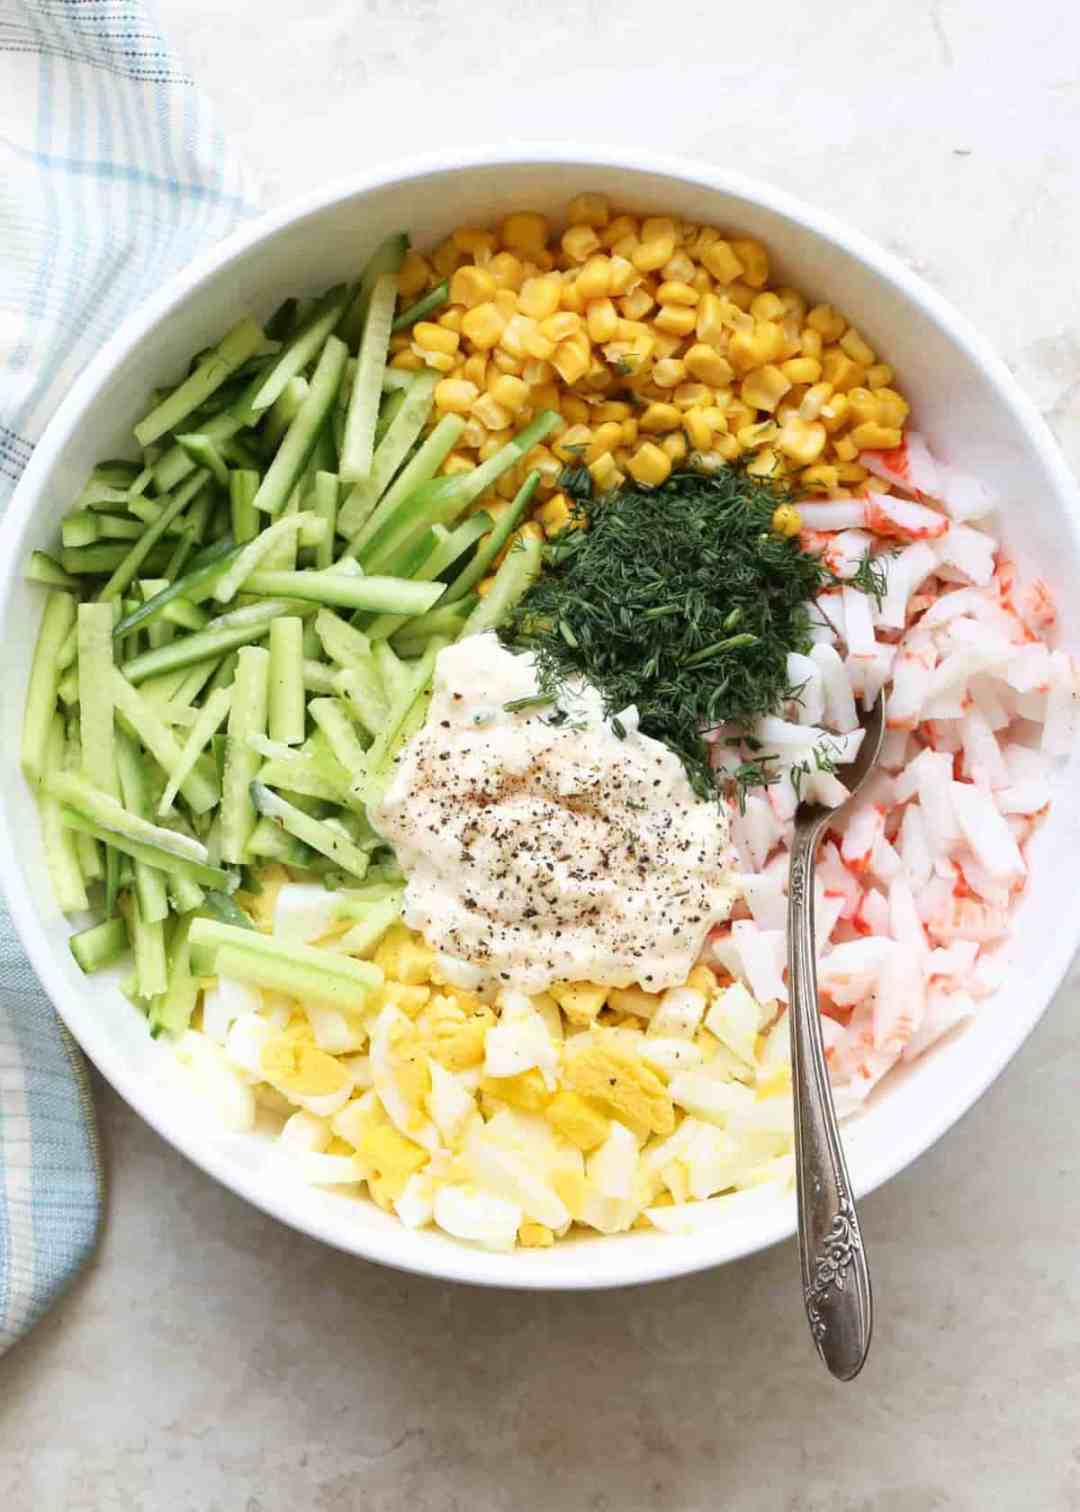 Ingredients cut for Egg salad in a bowl with mayo and dill.